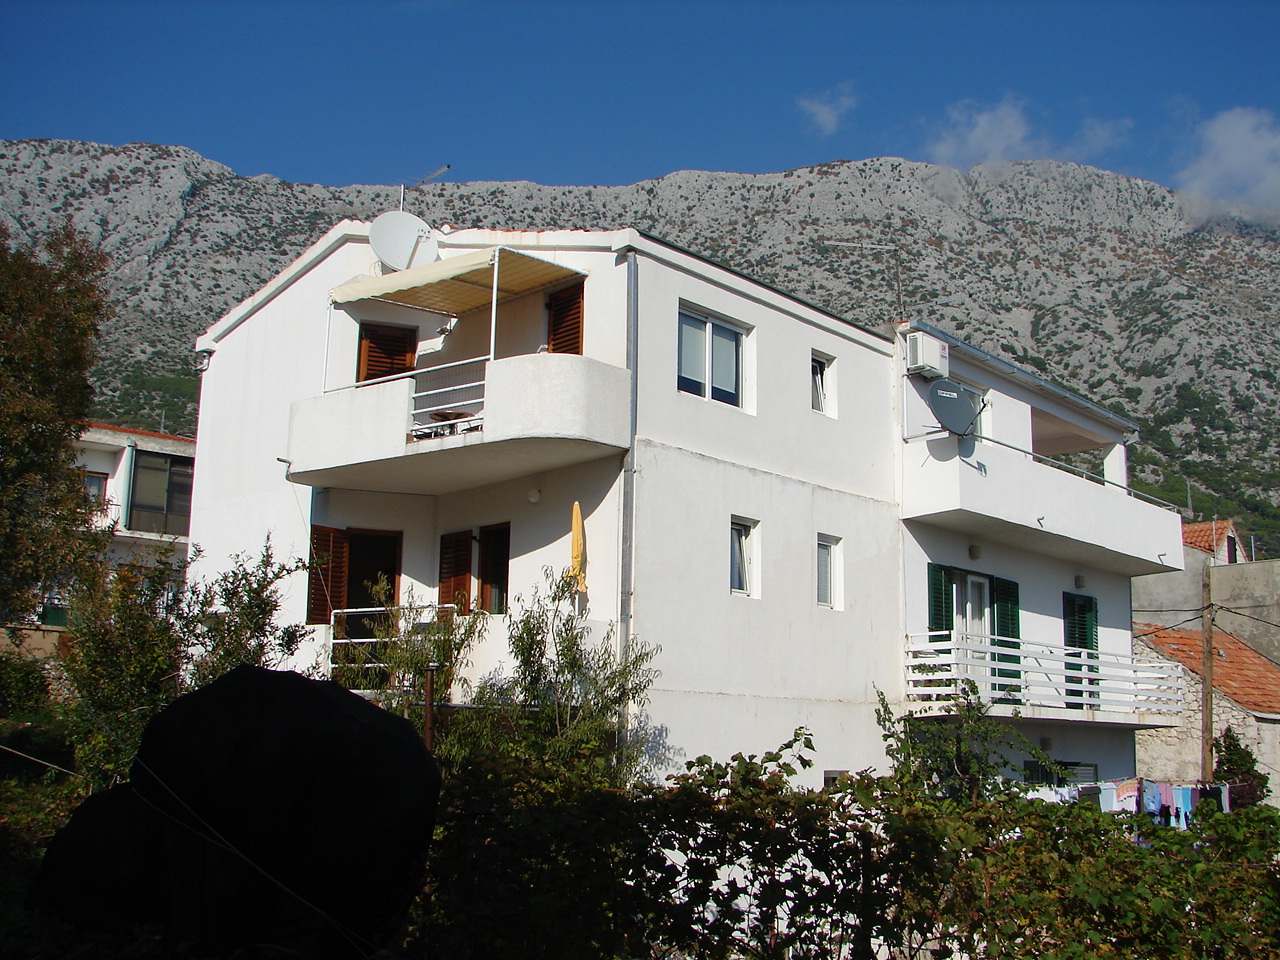 01313IGRA - Igrane - Apartments Croatia